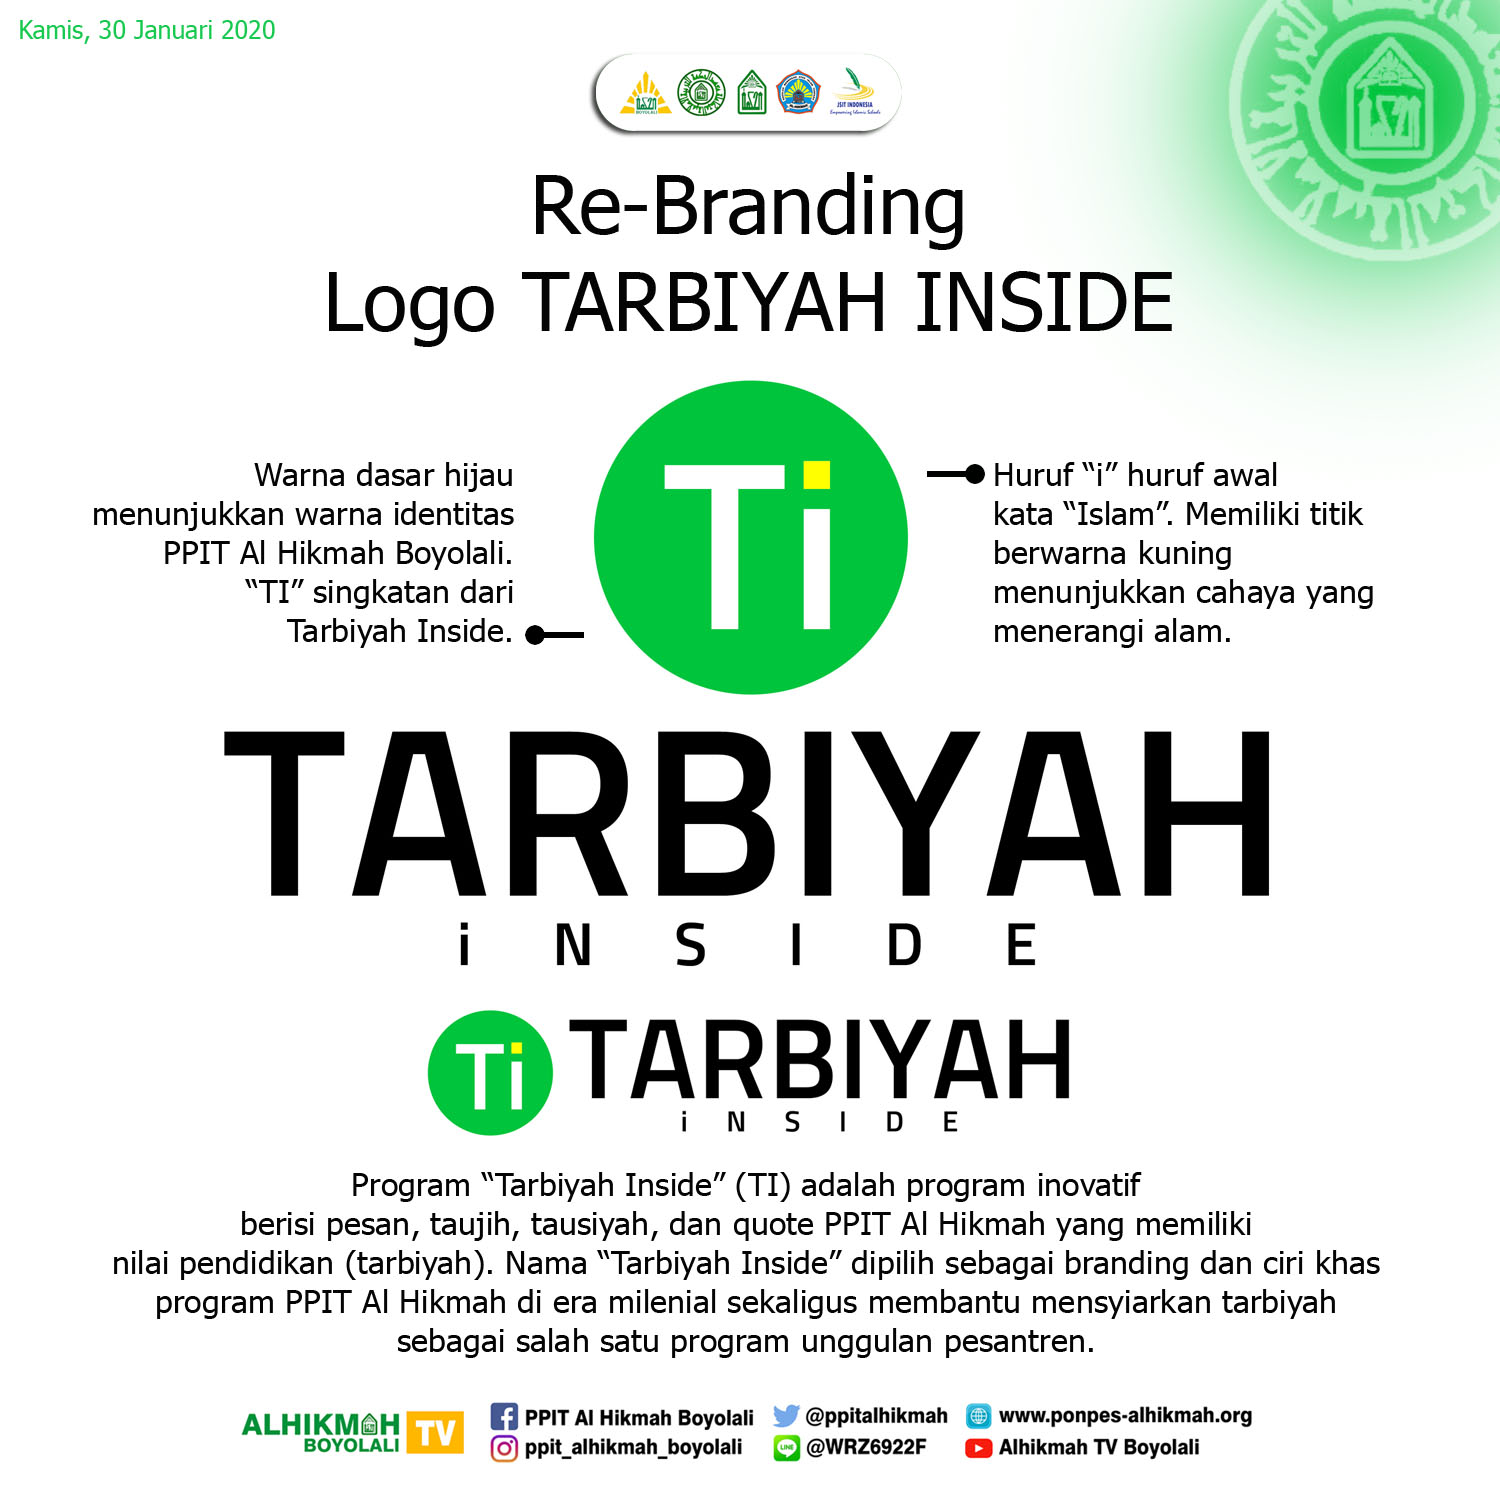 Re-Branding Logo TARBIYAH INSIDE